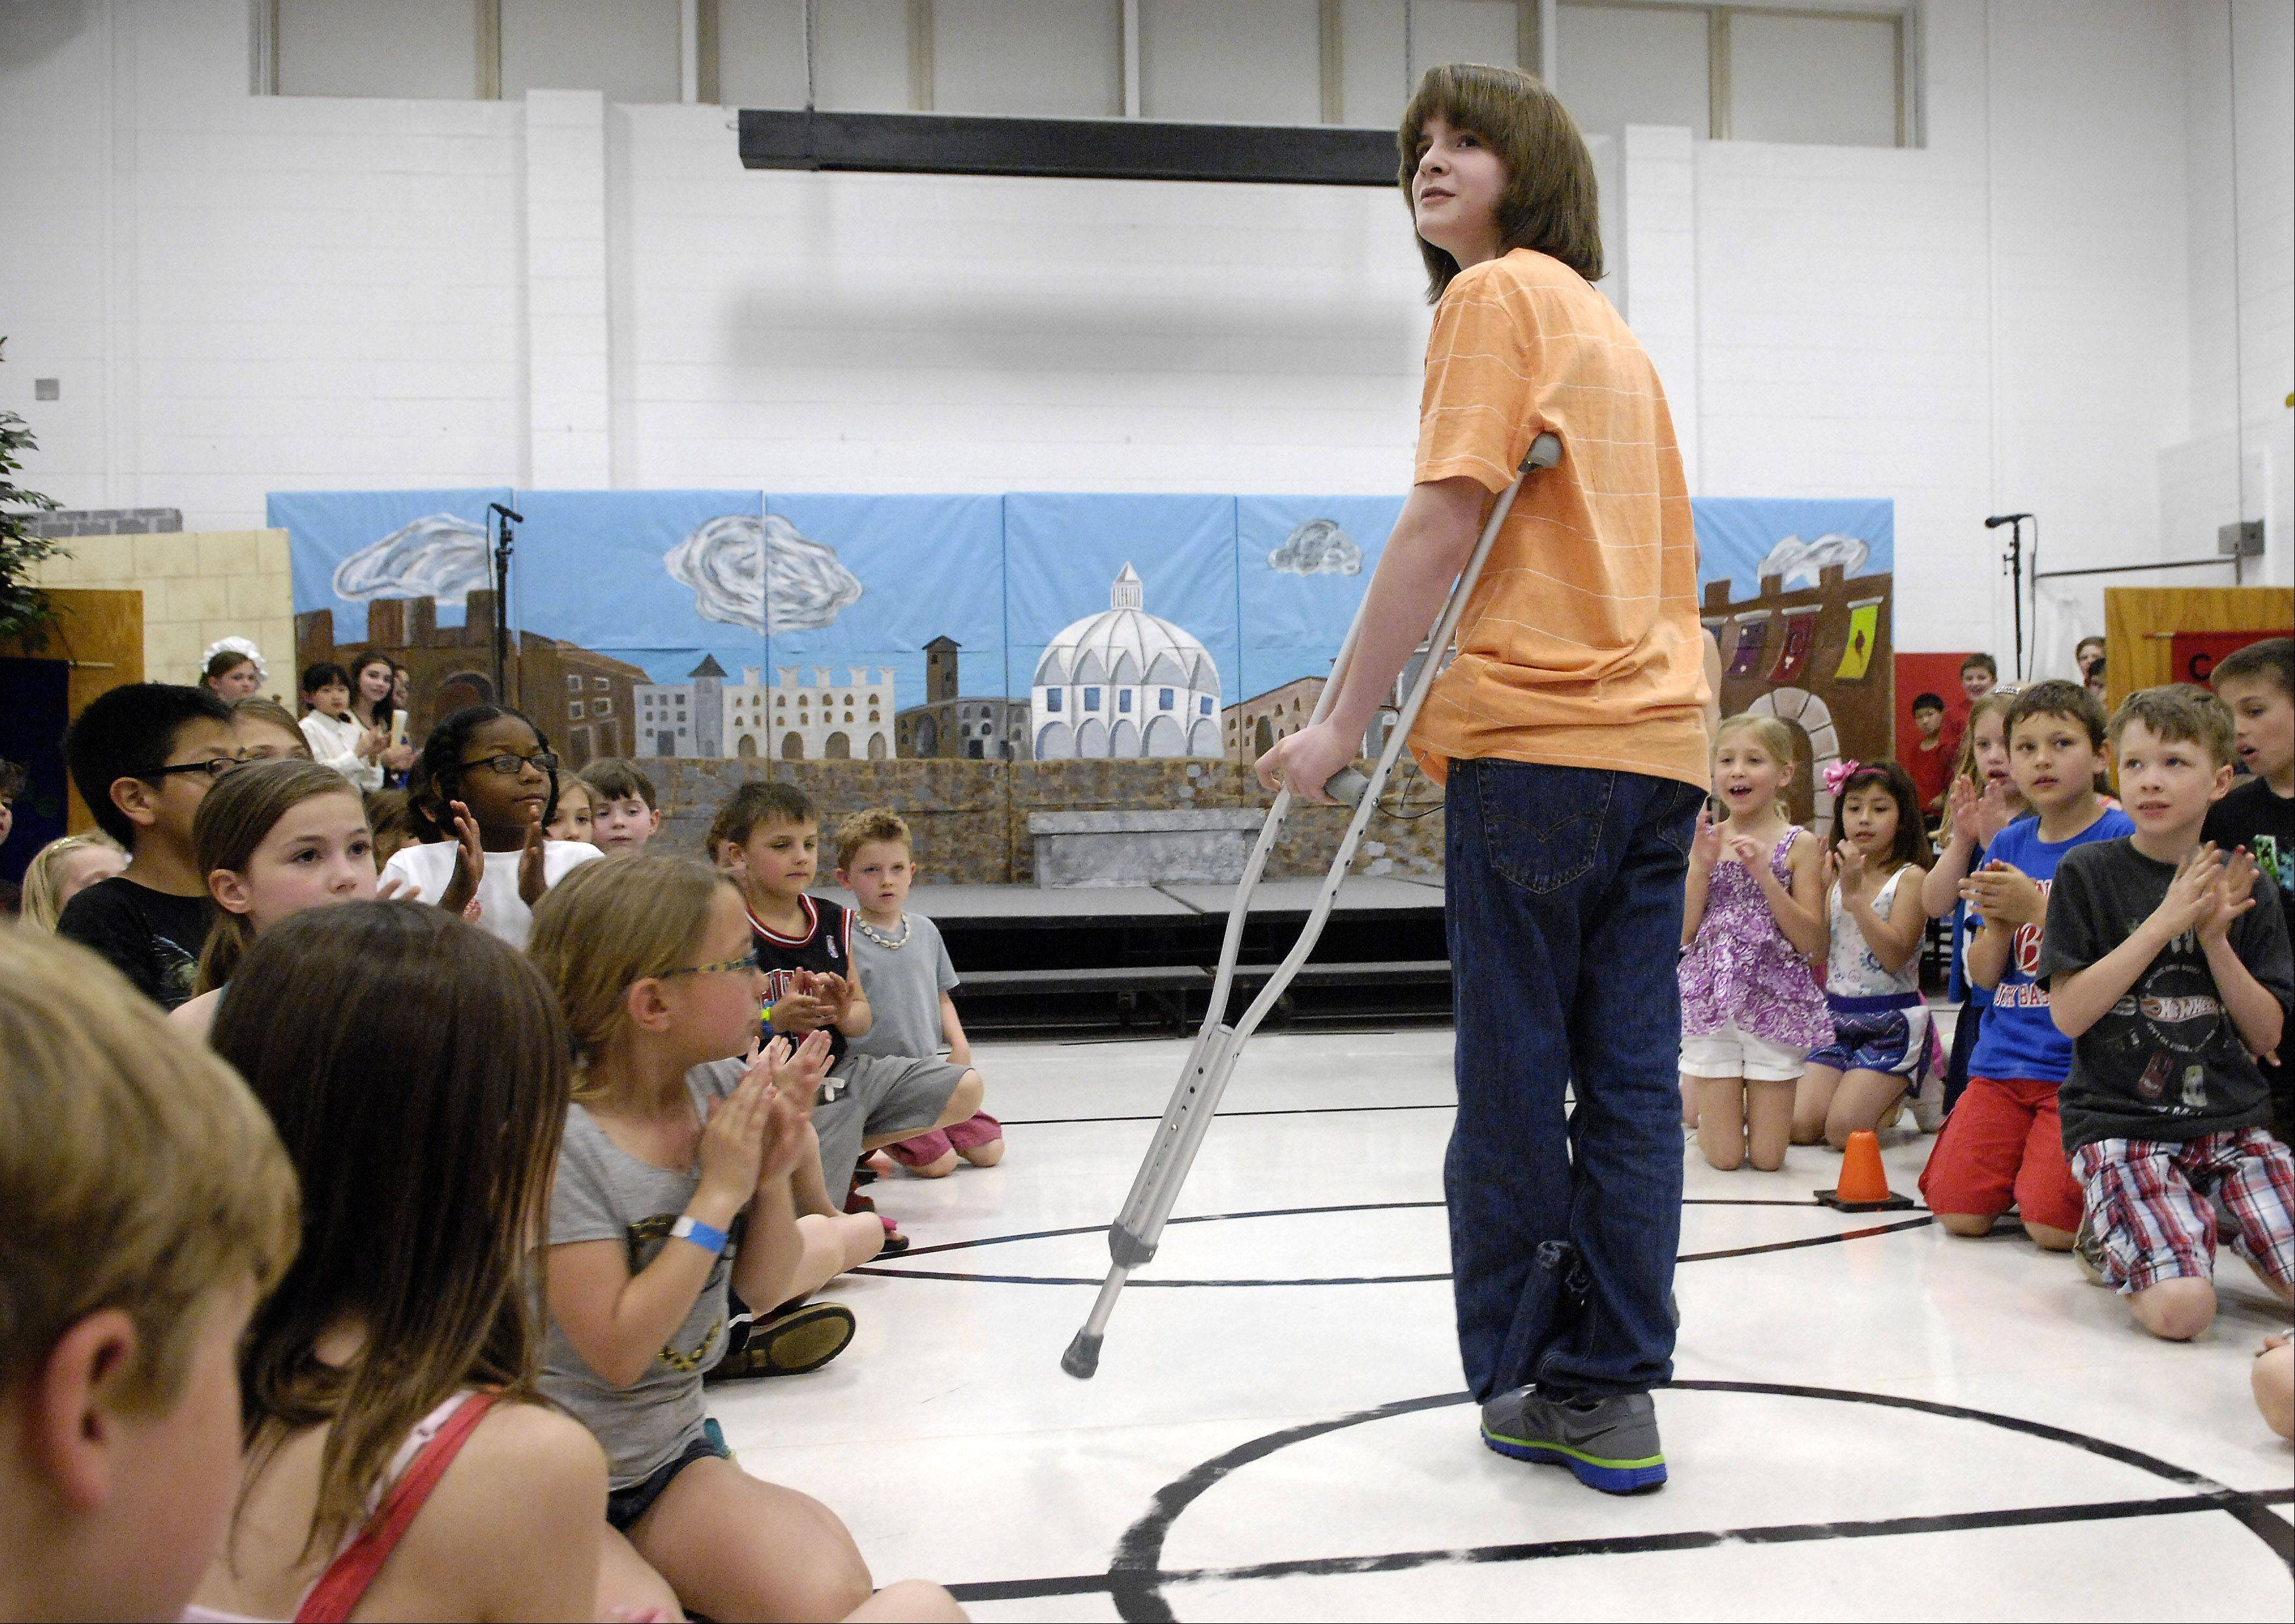 Dominic Szymanski, 11, basks in the cheers of his classmates as he made a surprise visit to Hough Street School in Barrington Tuesday, his first day back after being hit by a train in March.